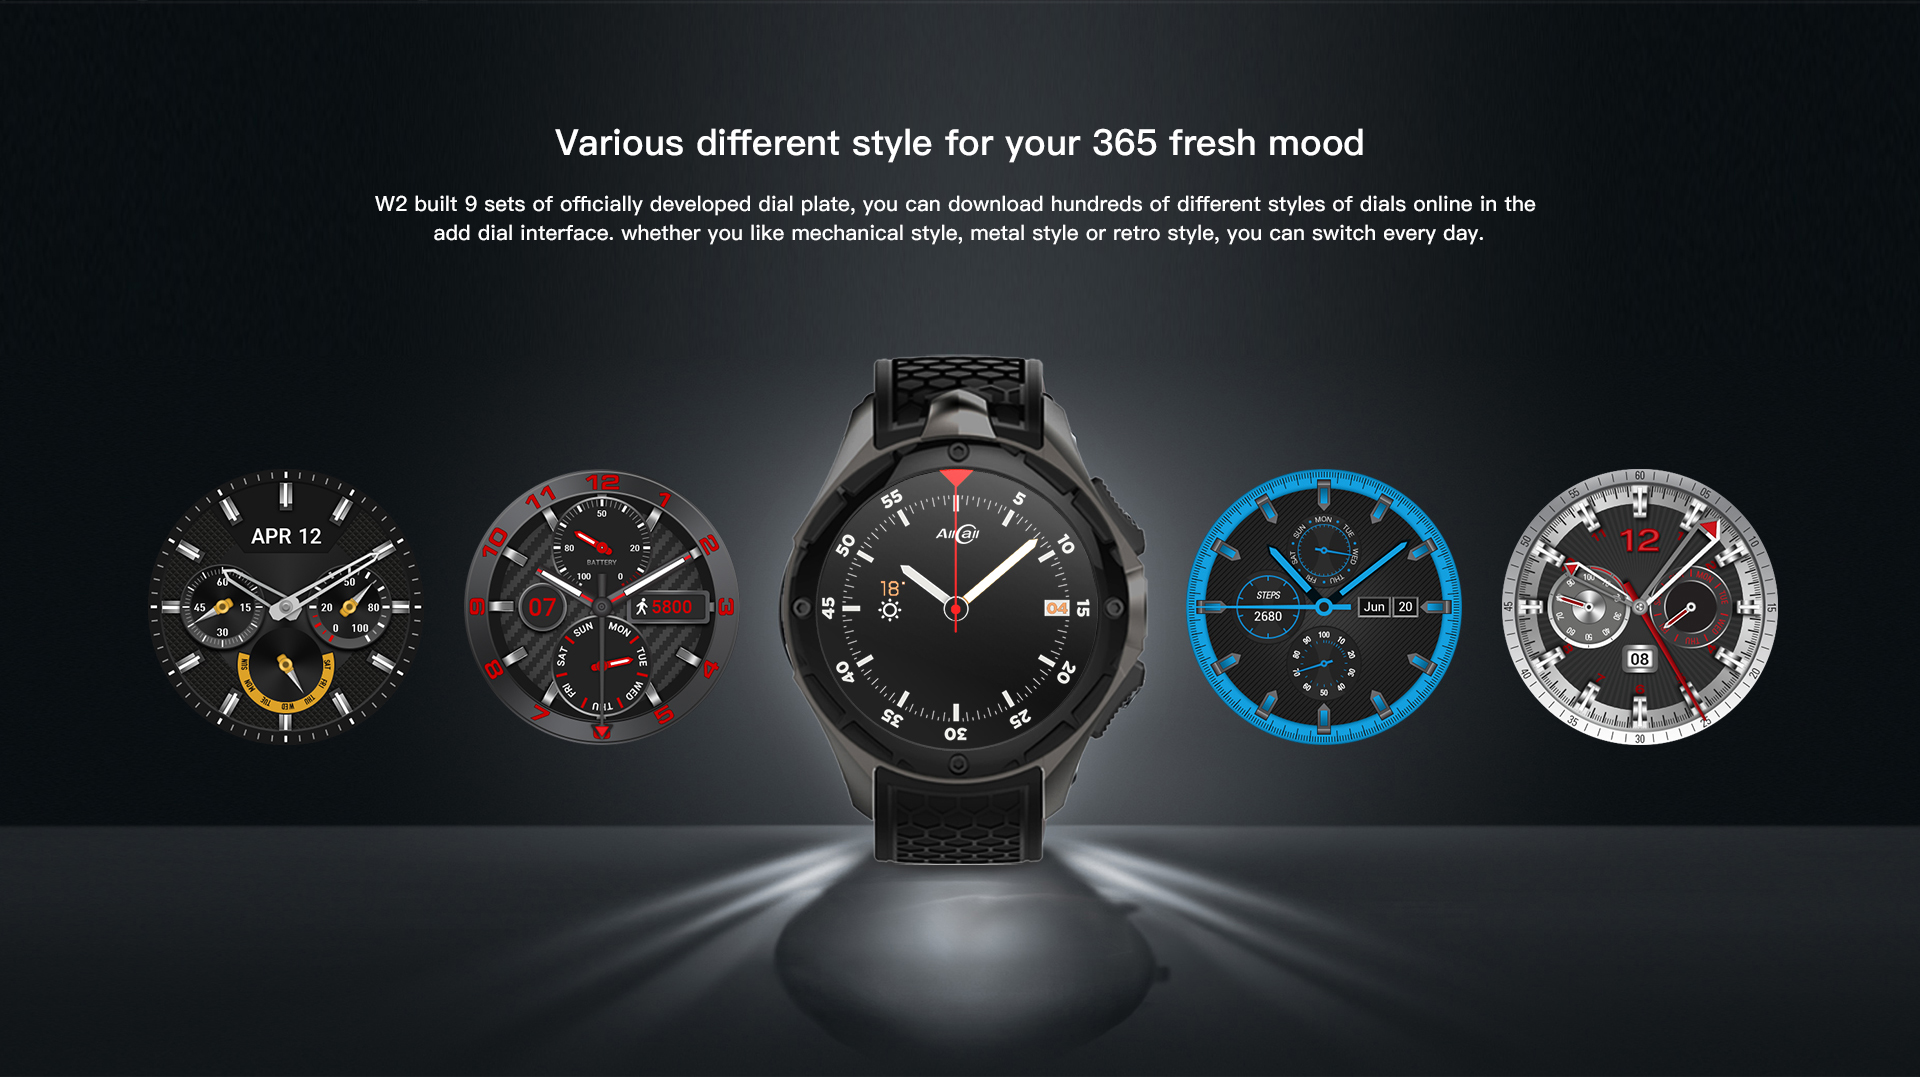 images/wholesale-electronics-2019/AllCall-W2-IP68-Android-Smartwatch-3G-139-inch-Touch-Screen-MTK-6580-Compass-Pedometer-Heart-Rate-Sensor-Android-70-plusbuyer_994.jpg